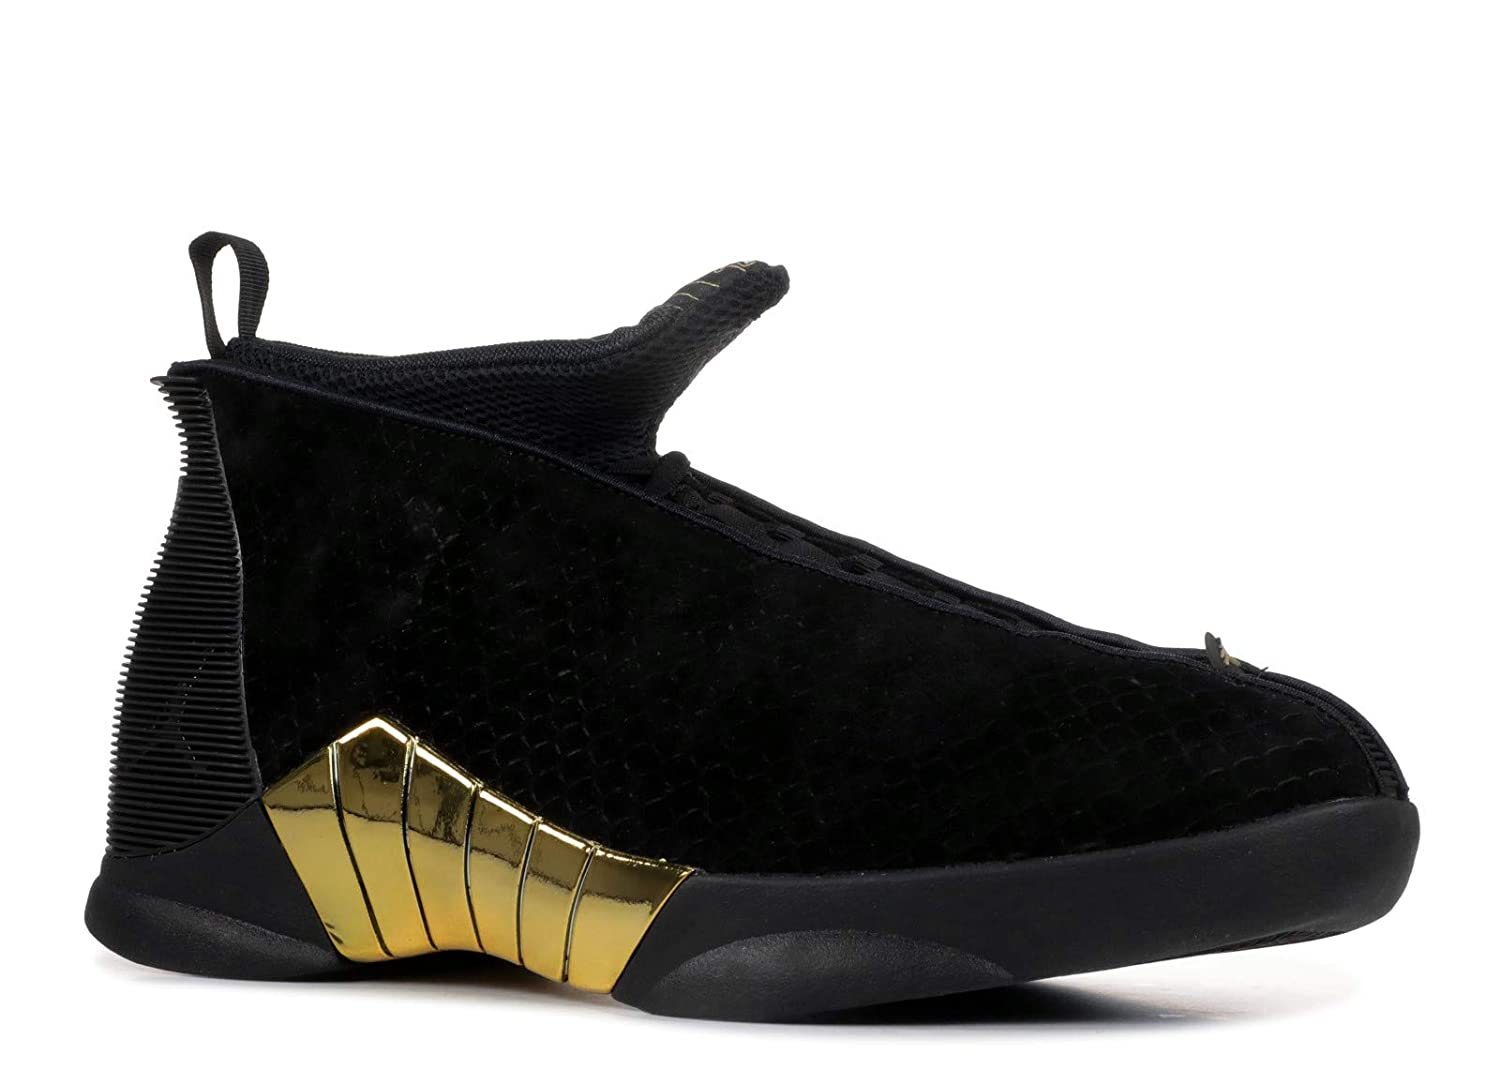 AIR JORDAN - エアジョーダン - AIR JORDAN 15 RETRO DB 'DOERNBECHER' - BV7107-017 (メンズ) B07P1536QR  12